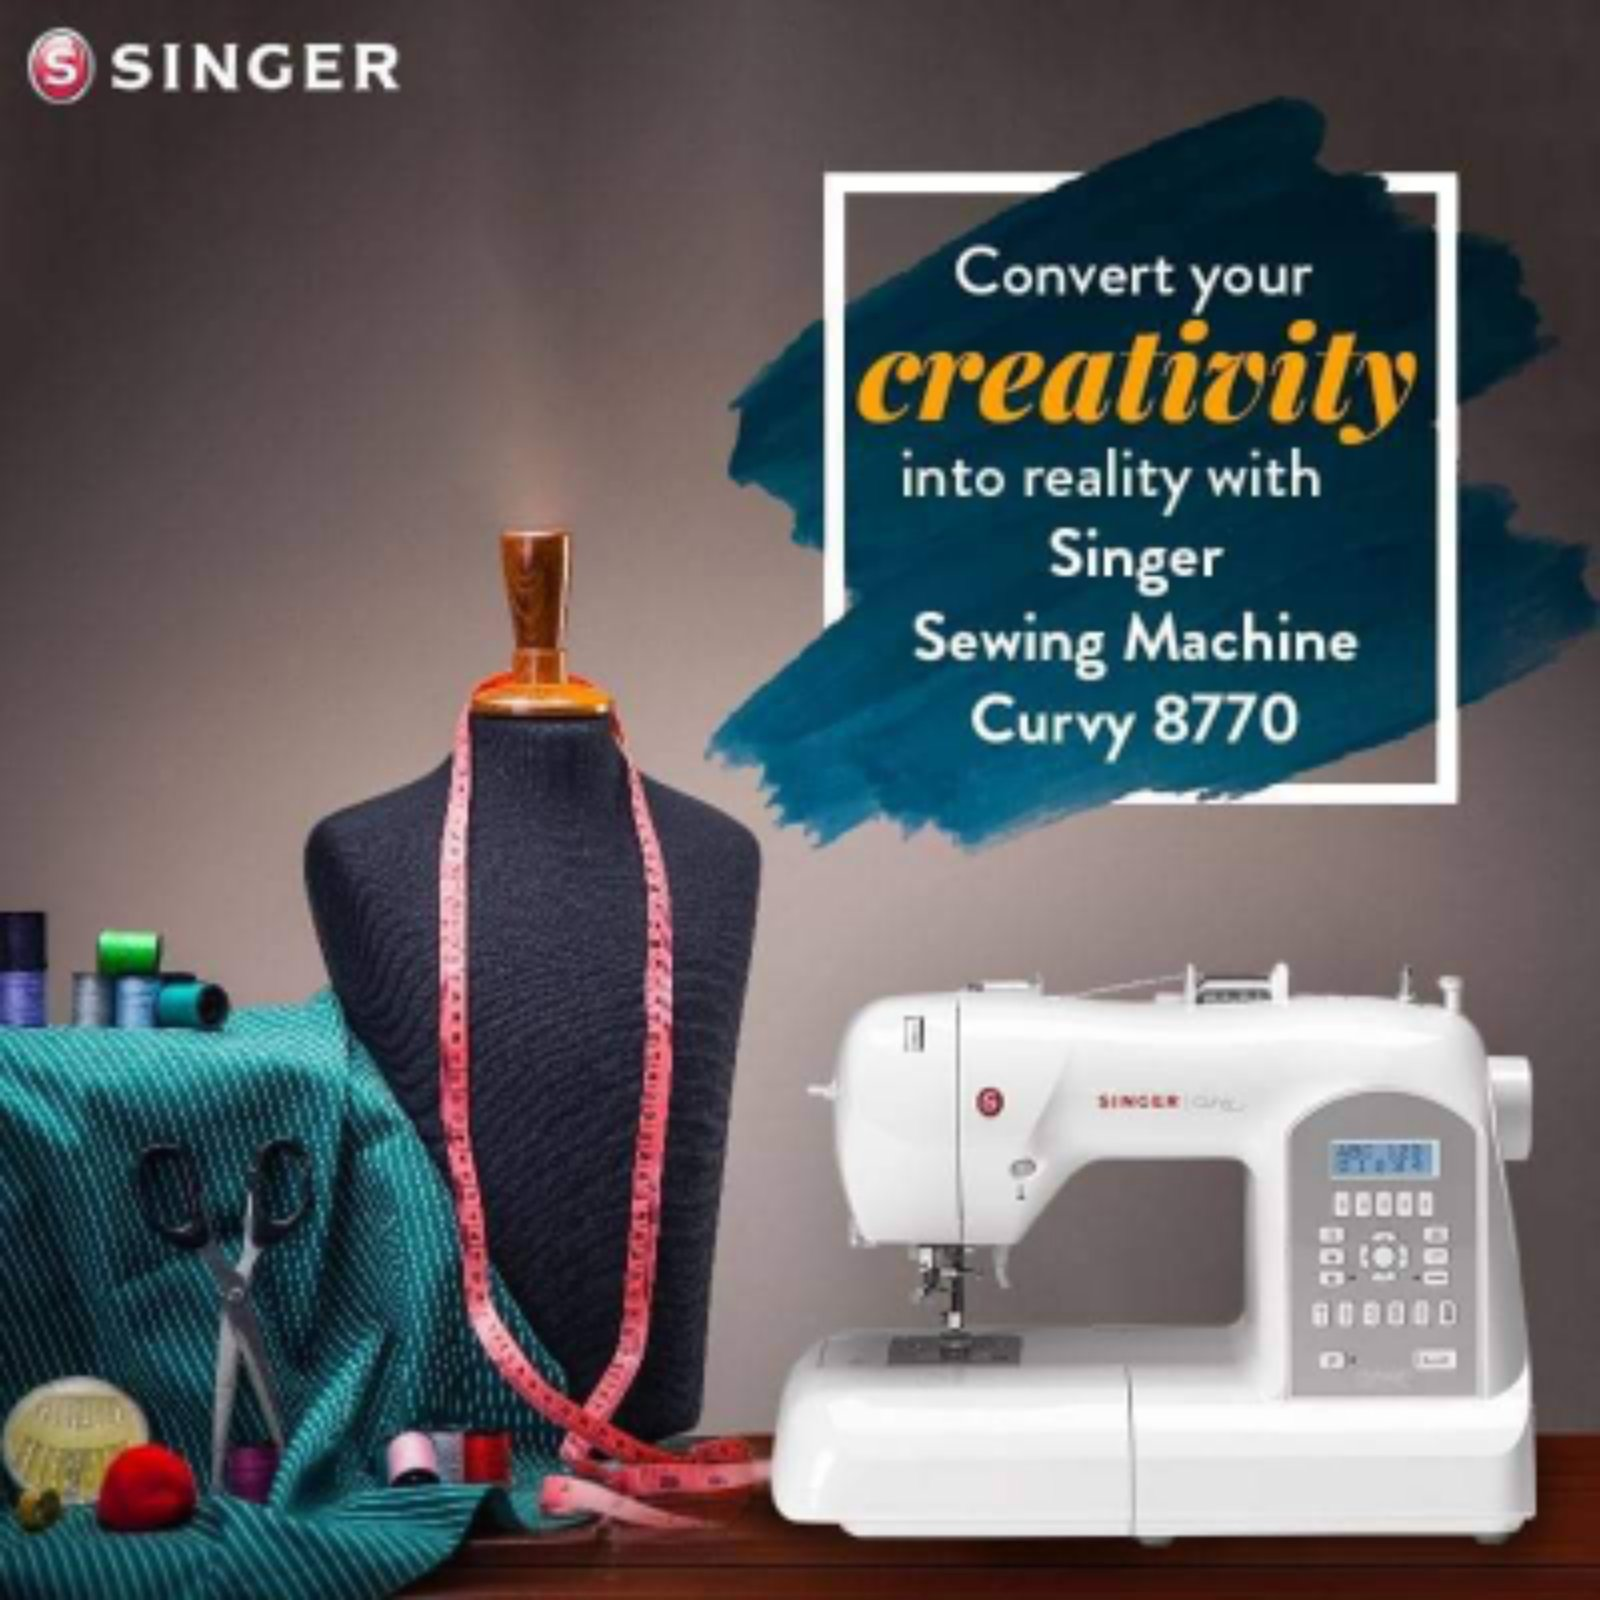 For Singer Emboidery Sewing Machine